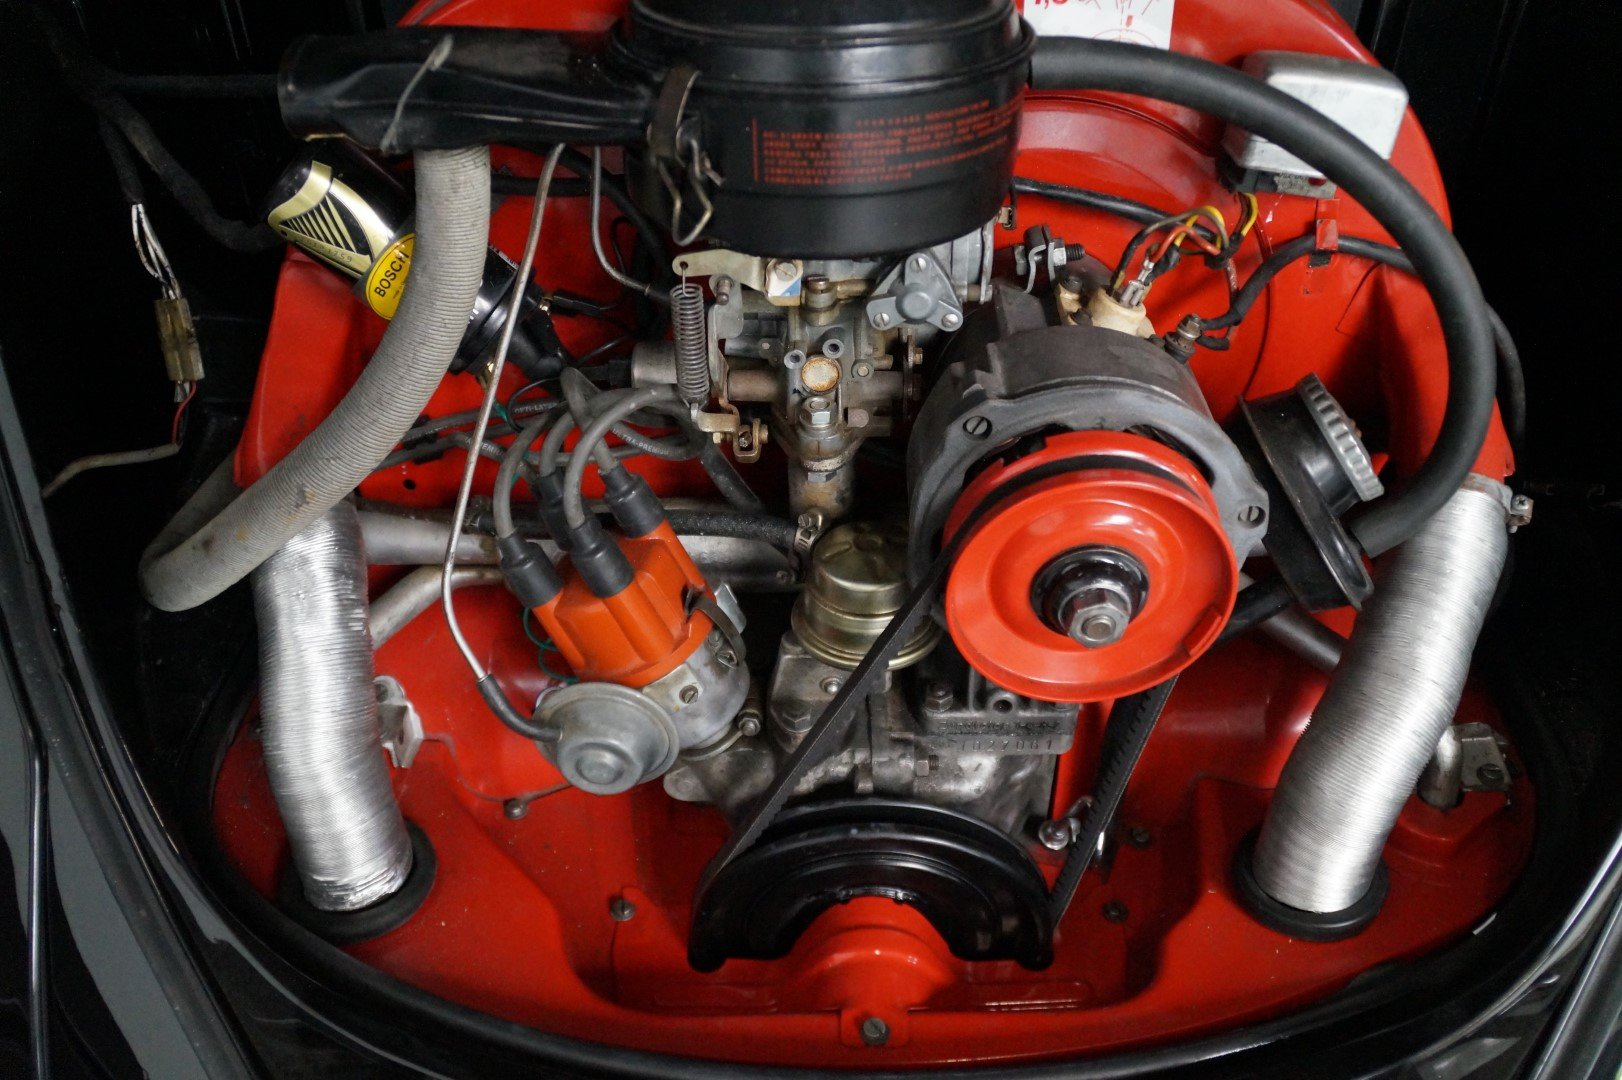 VOLKSWAGEN BEETLE matching numbers fully restored (1967) For Sale (picture 5 of 6)